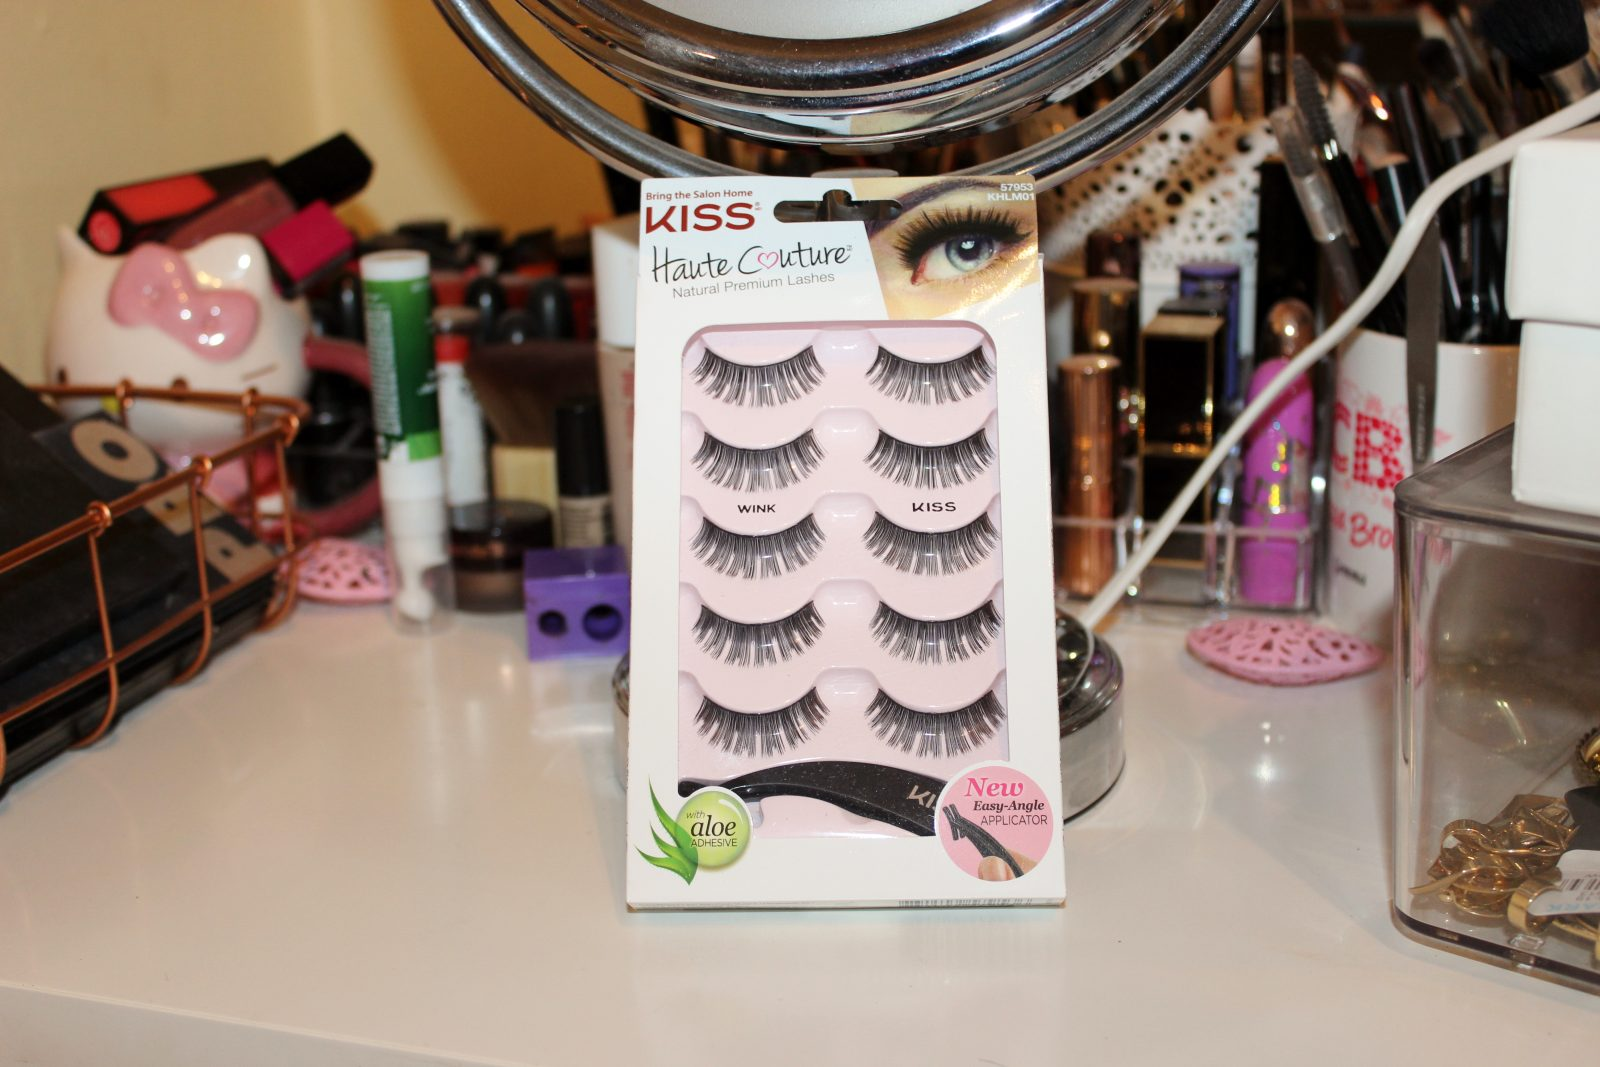 Kiss Haute Couture Wink Lashes